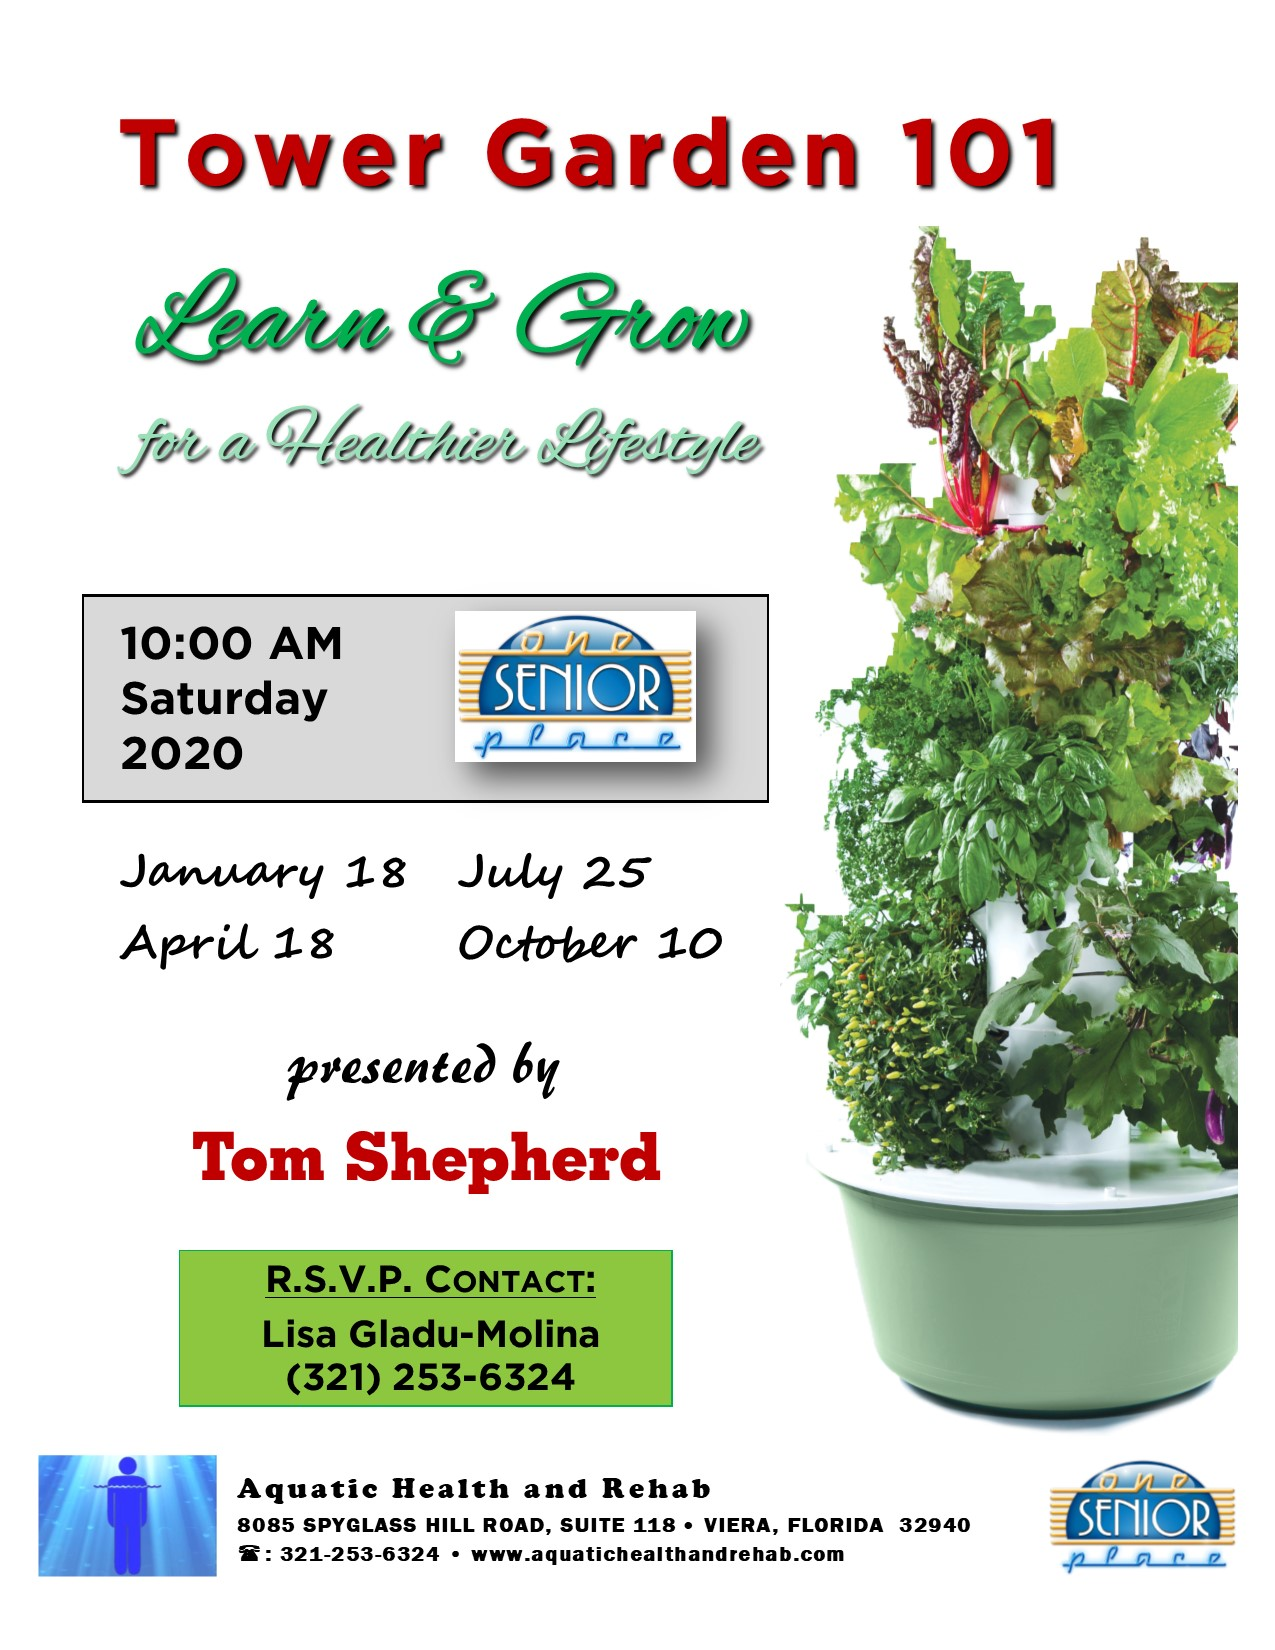 Tower Garden 101 presented by Aquatic Health and Rehab